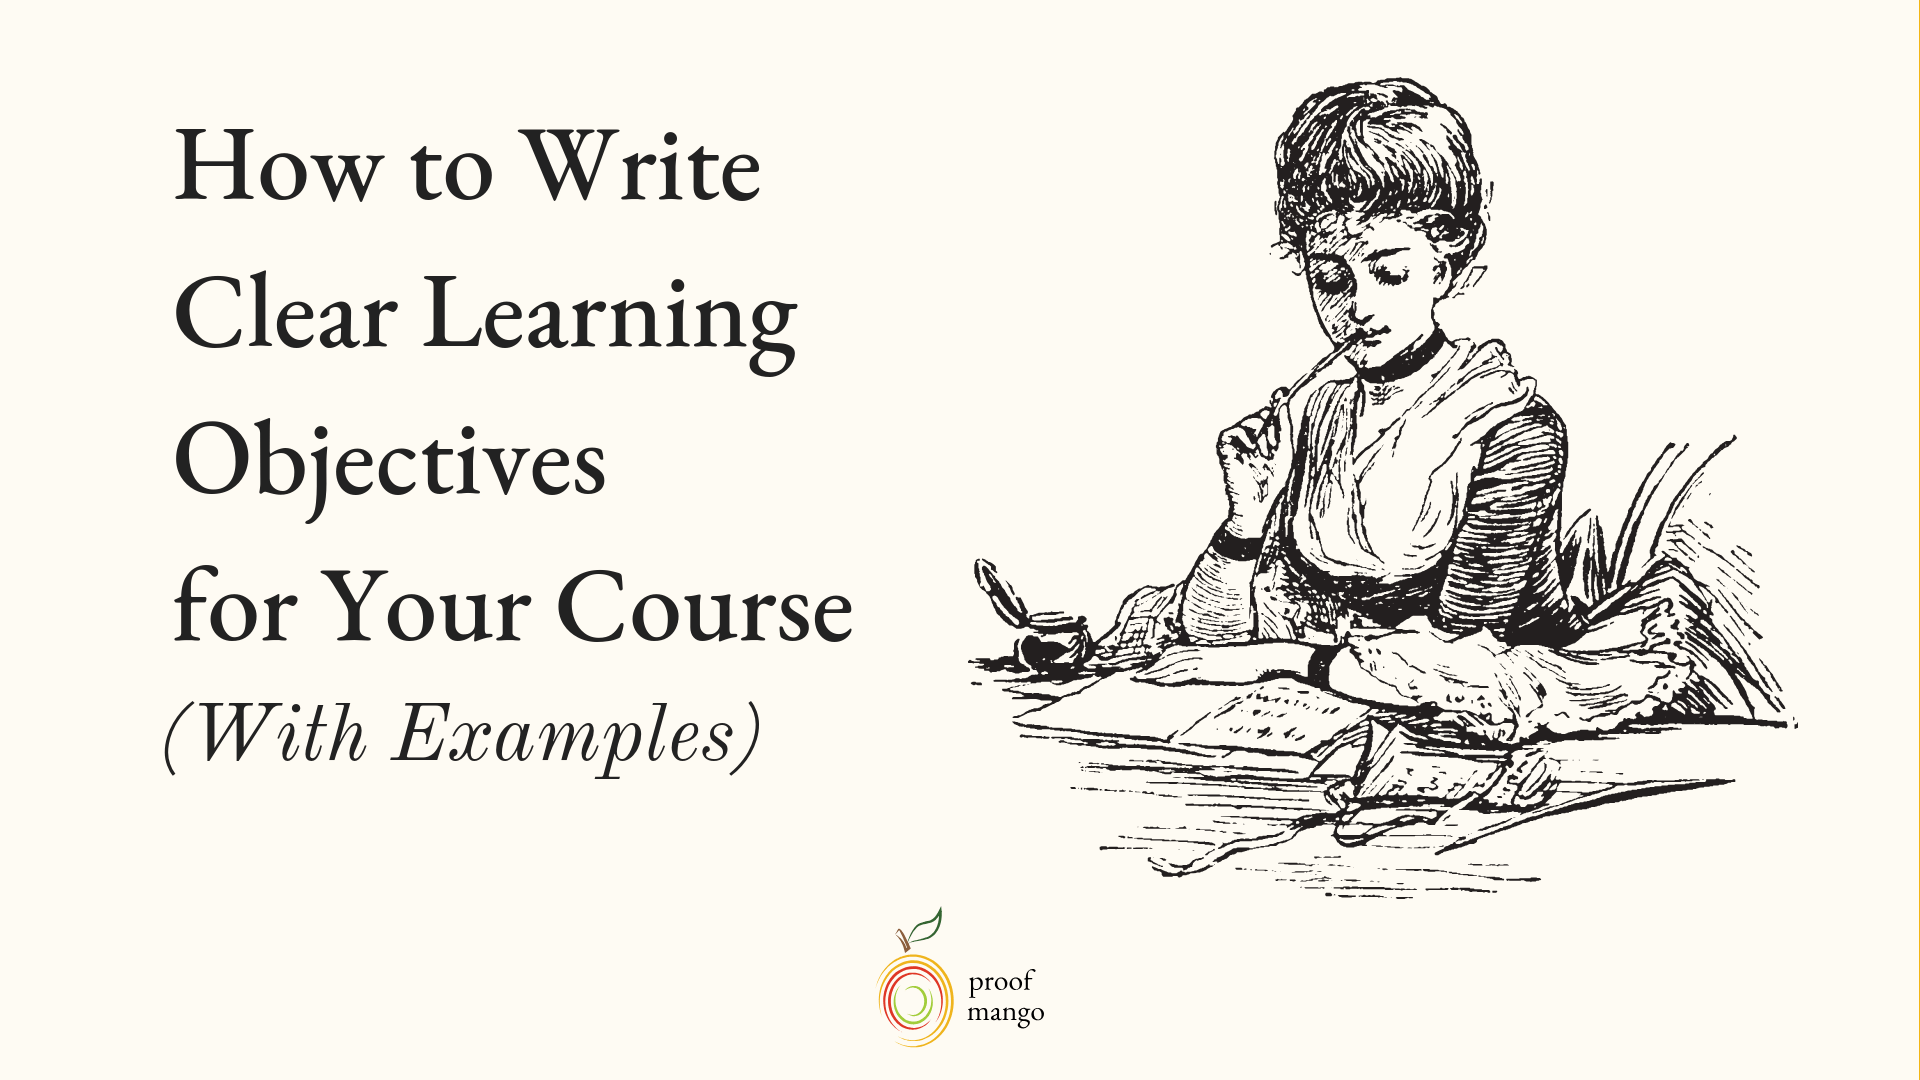 How to Write Clear Learning Objectives for Your Course